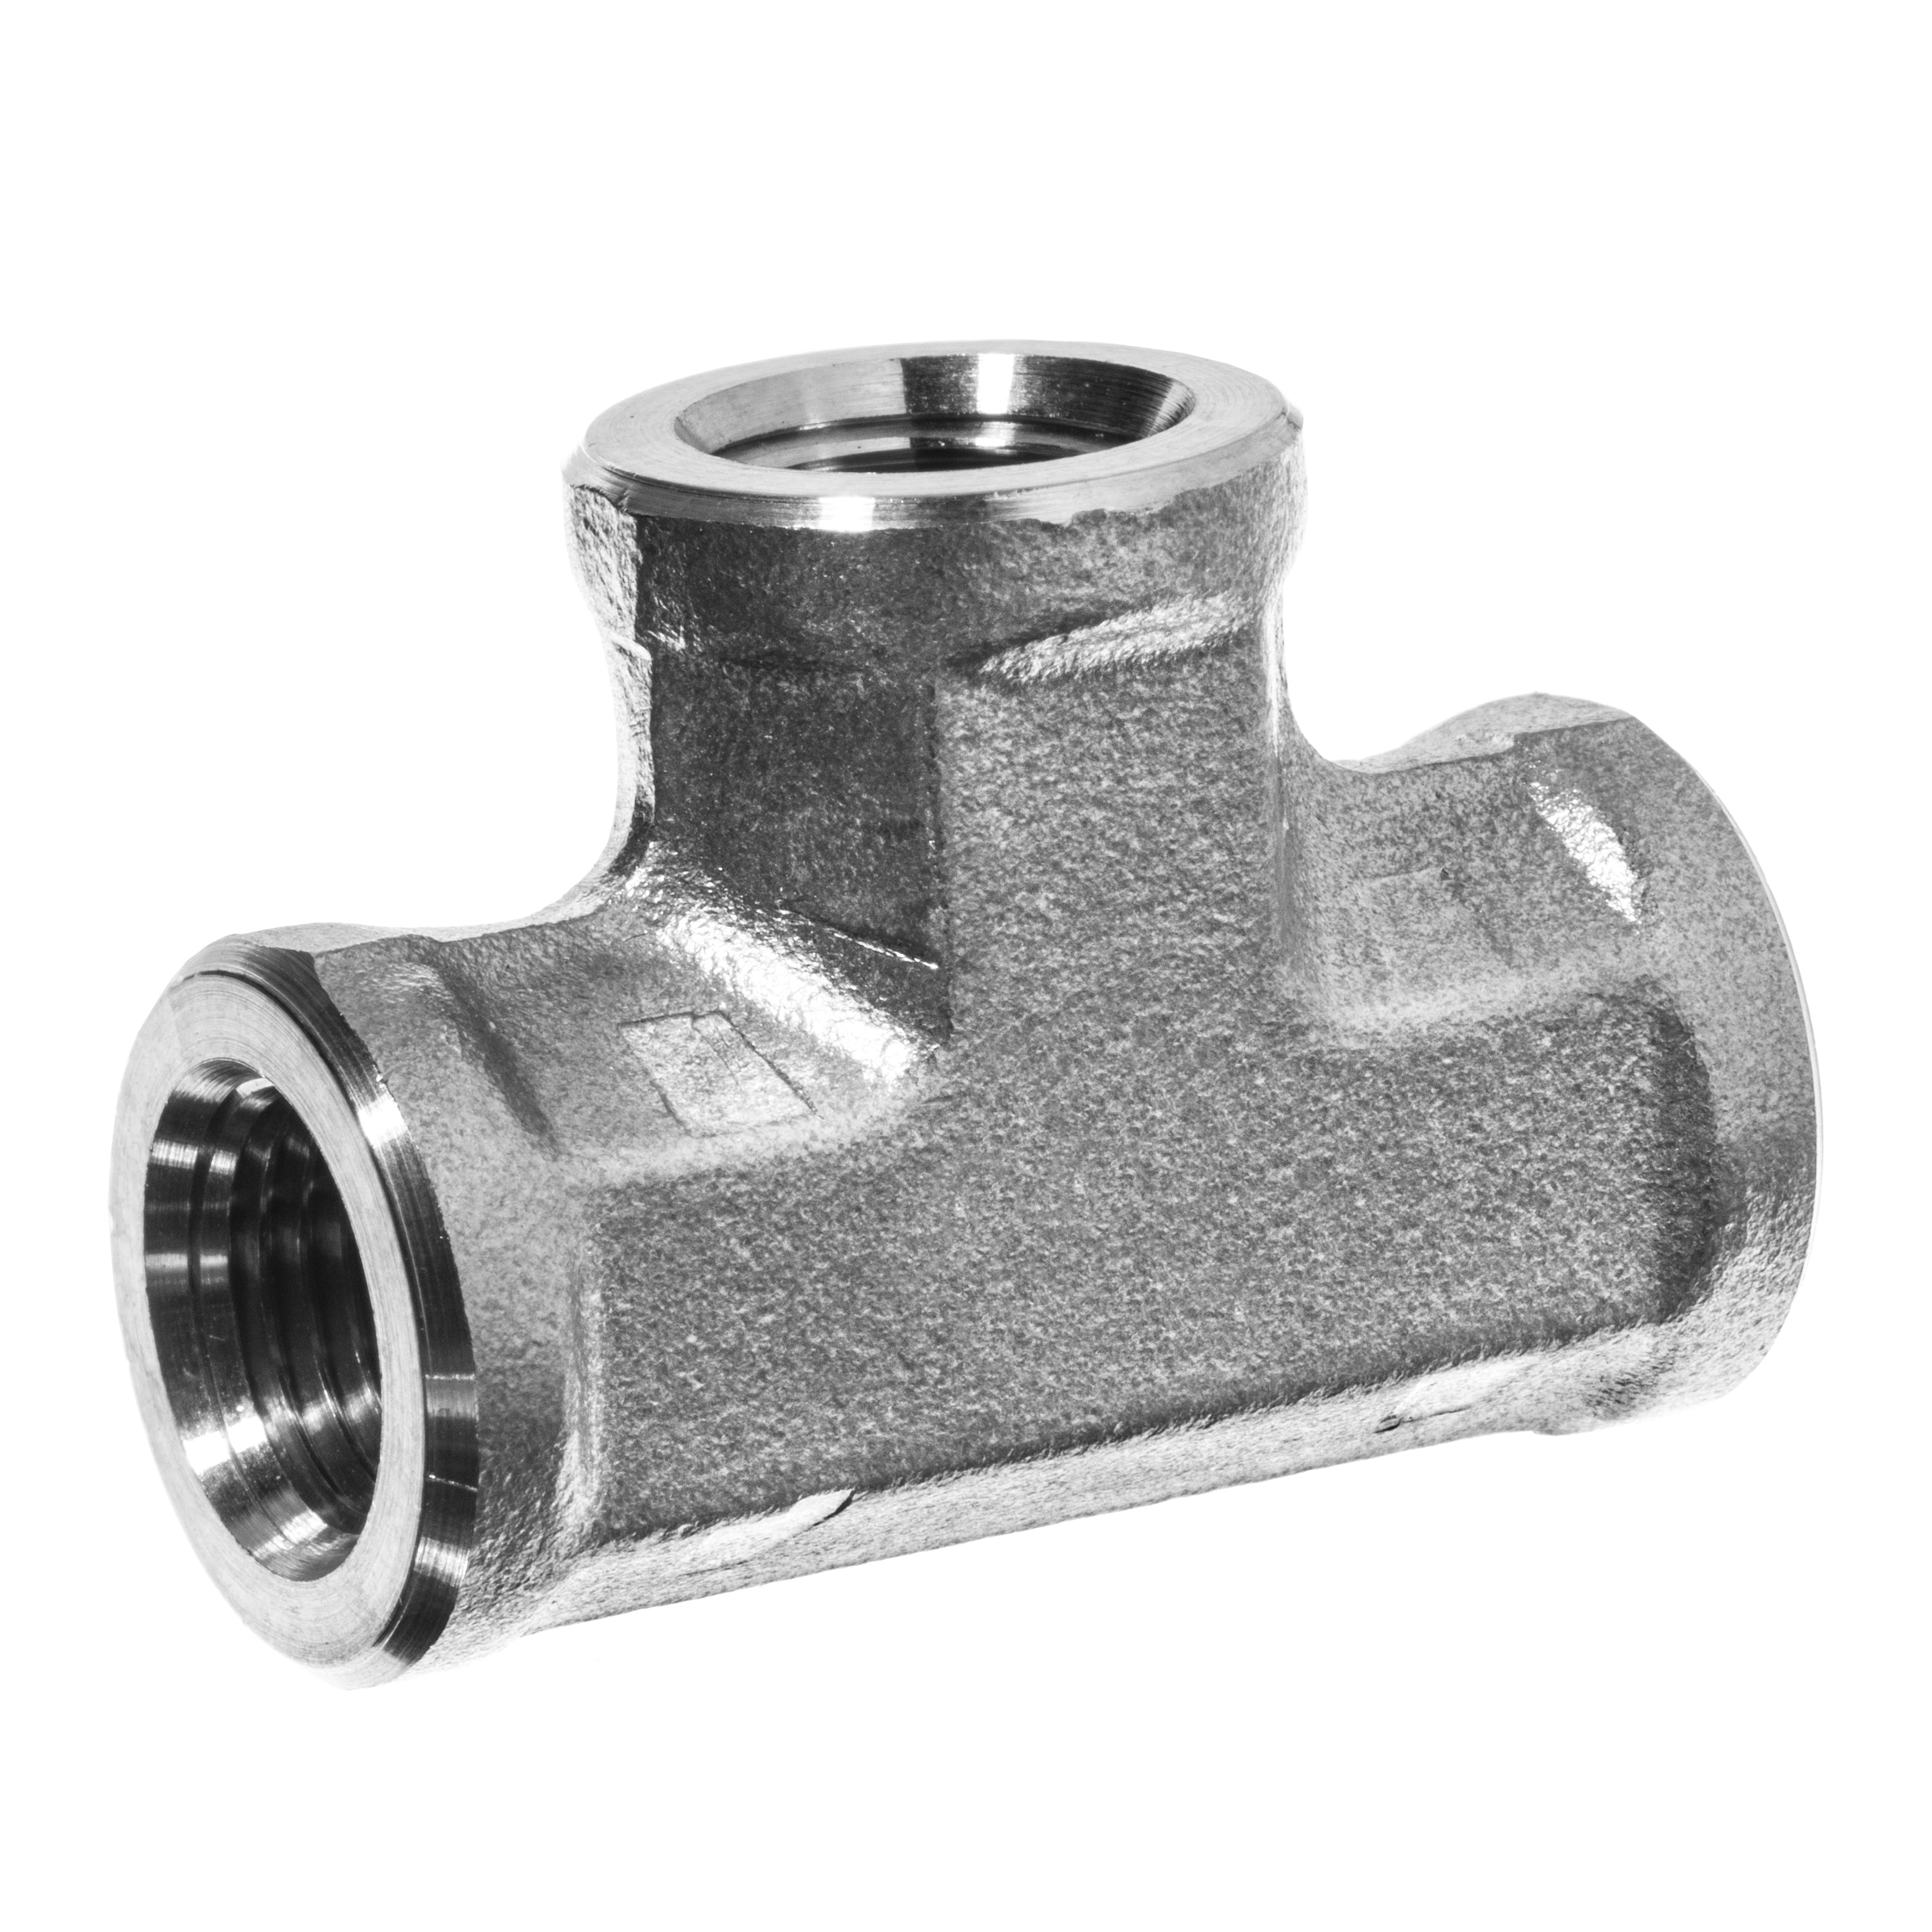 316 SS Instrumentation Pipe Fittings